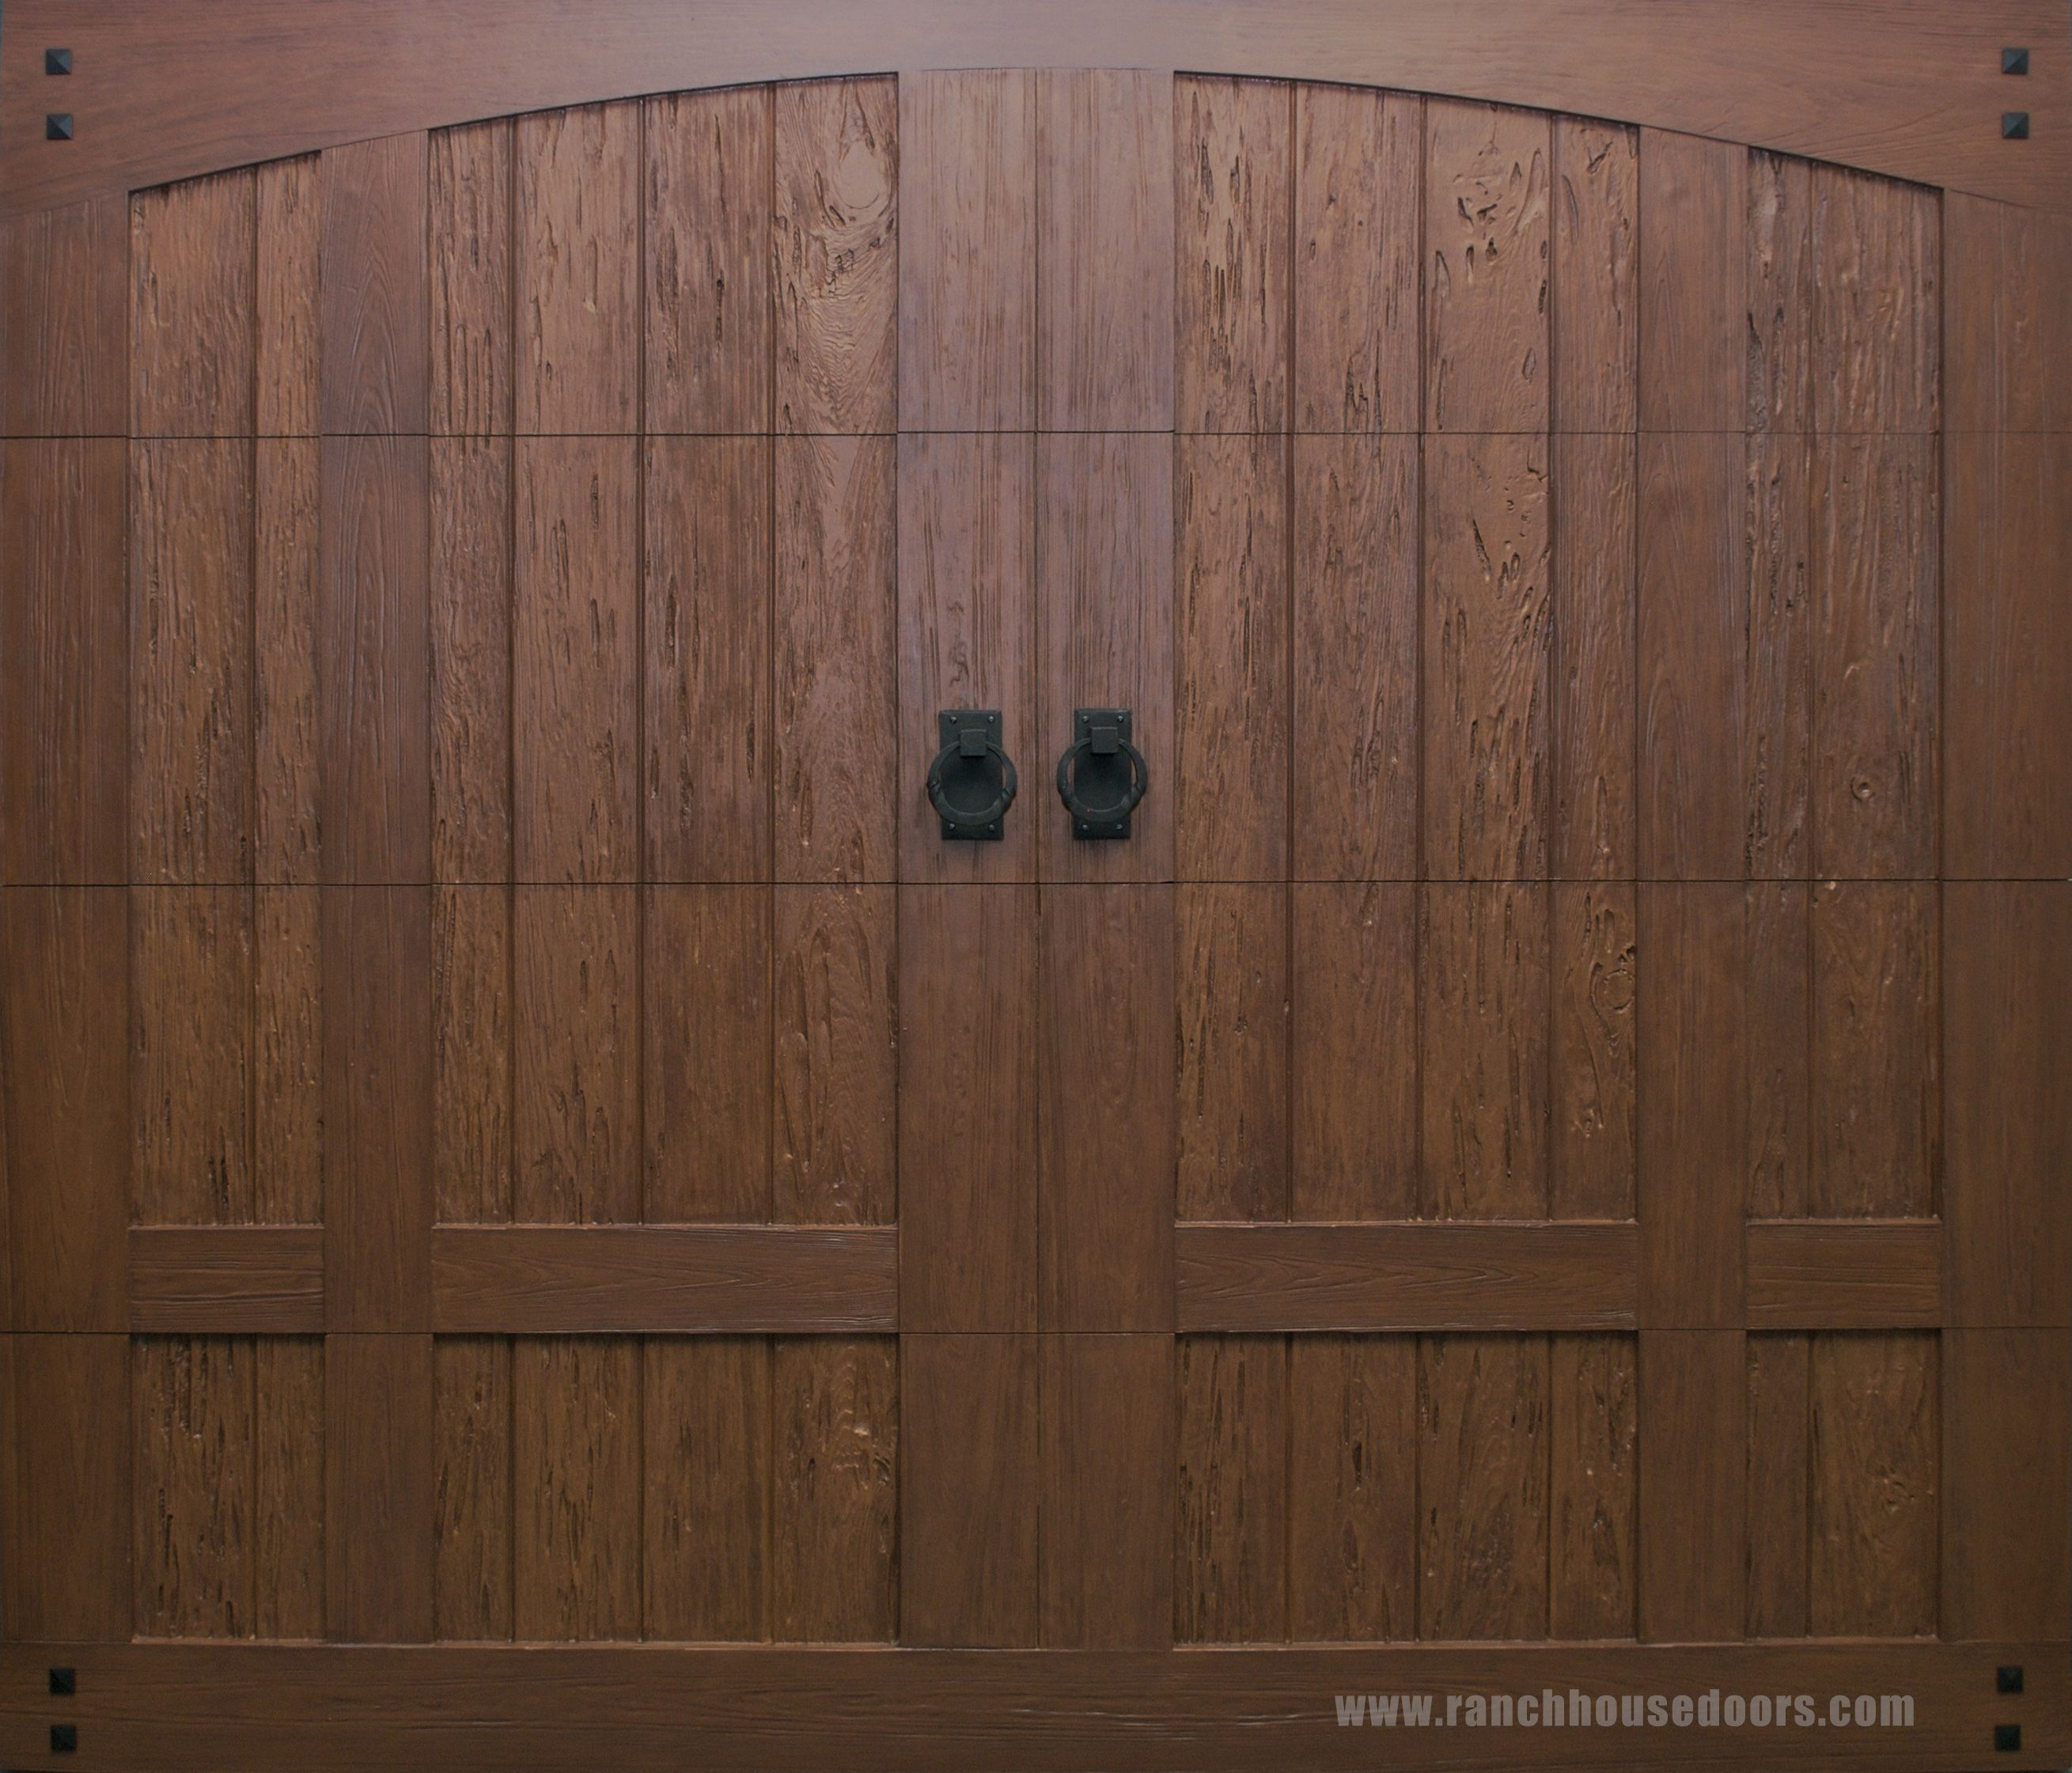 Ranch House Doors Model 303 Elements Collection faux wood ...